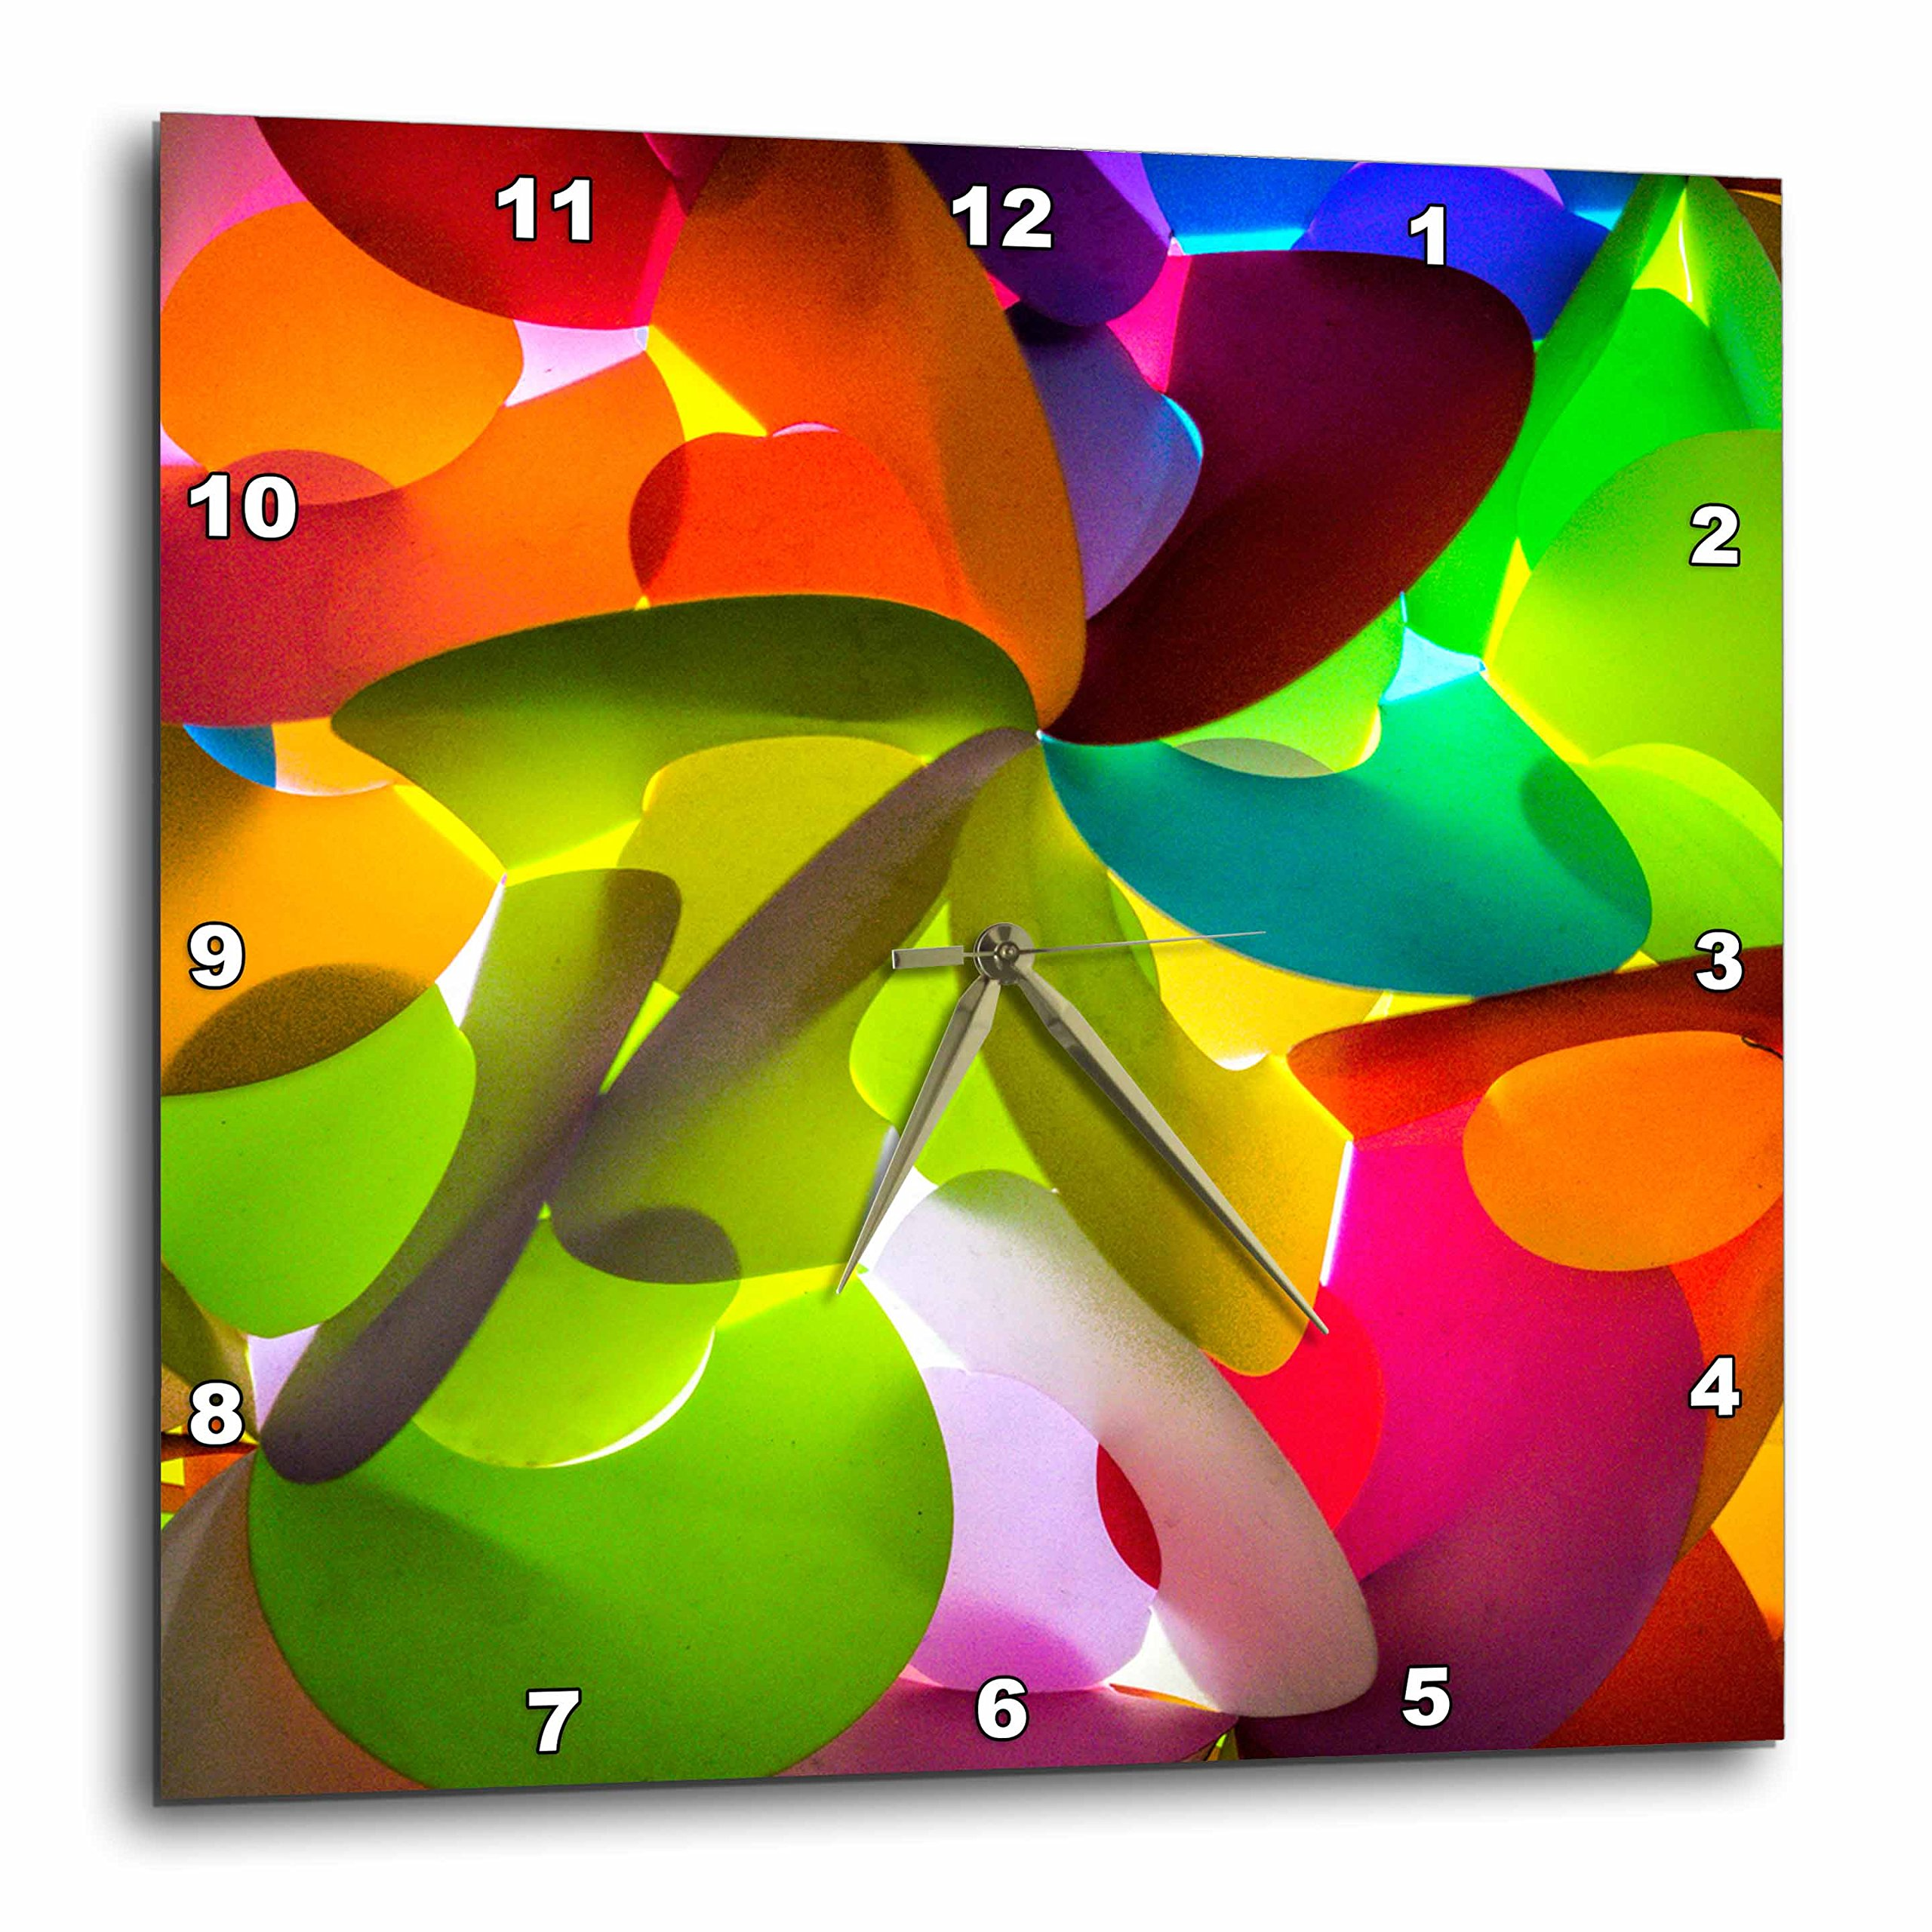 3dRose Danita Delimont - Abstracts - Thailand, Chiang Mai, Thai Market Place - 10x10 Wall Clock (dpp_276975_1) by 3dRose